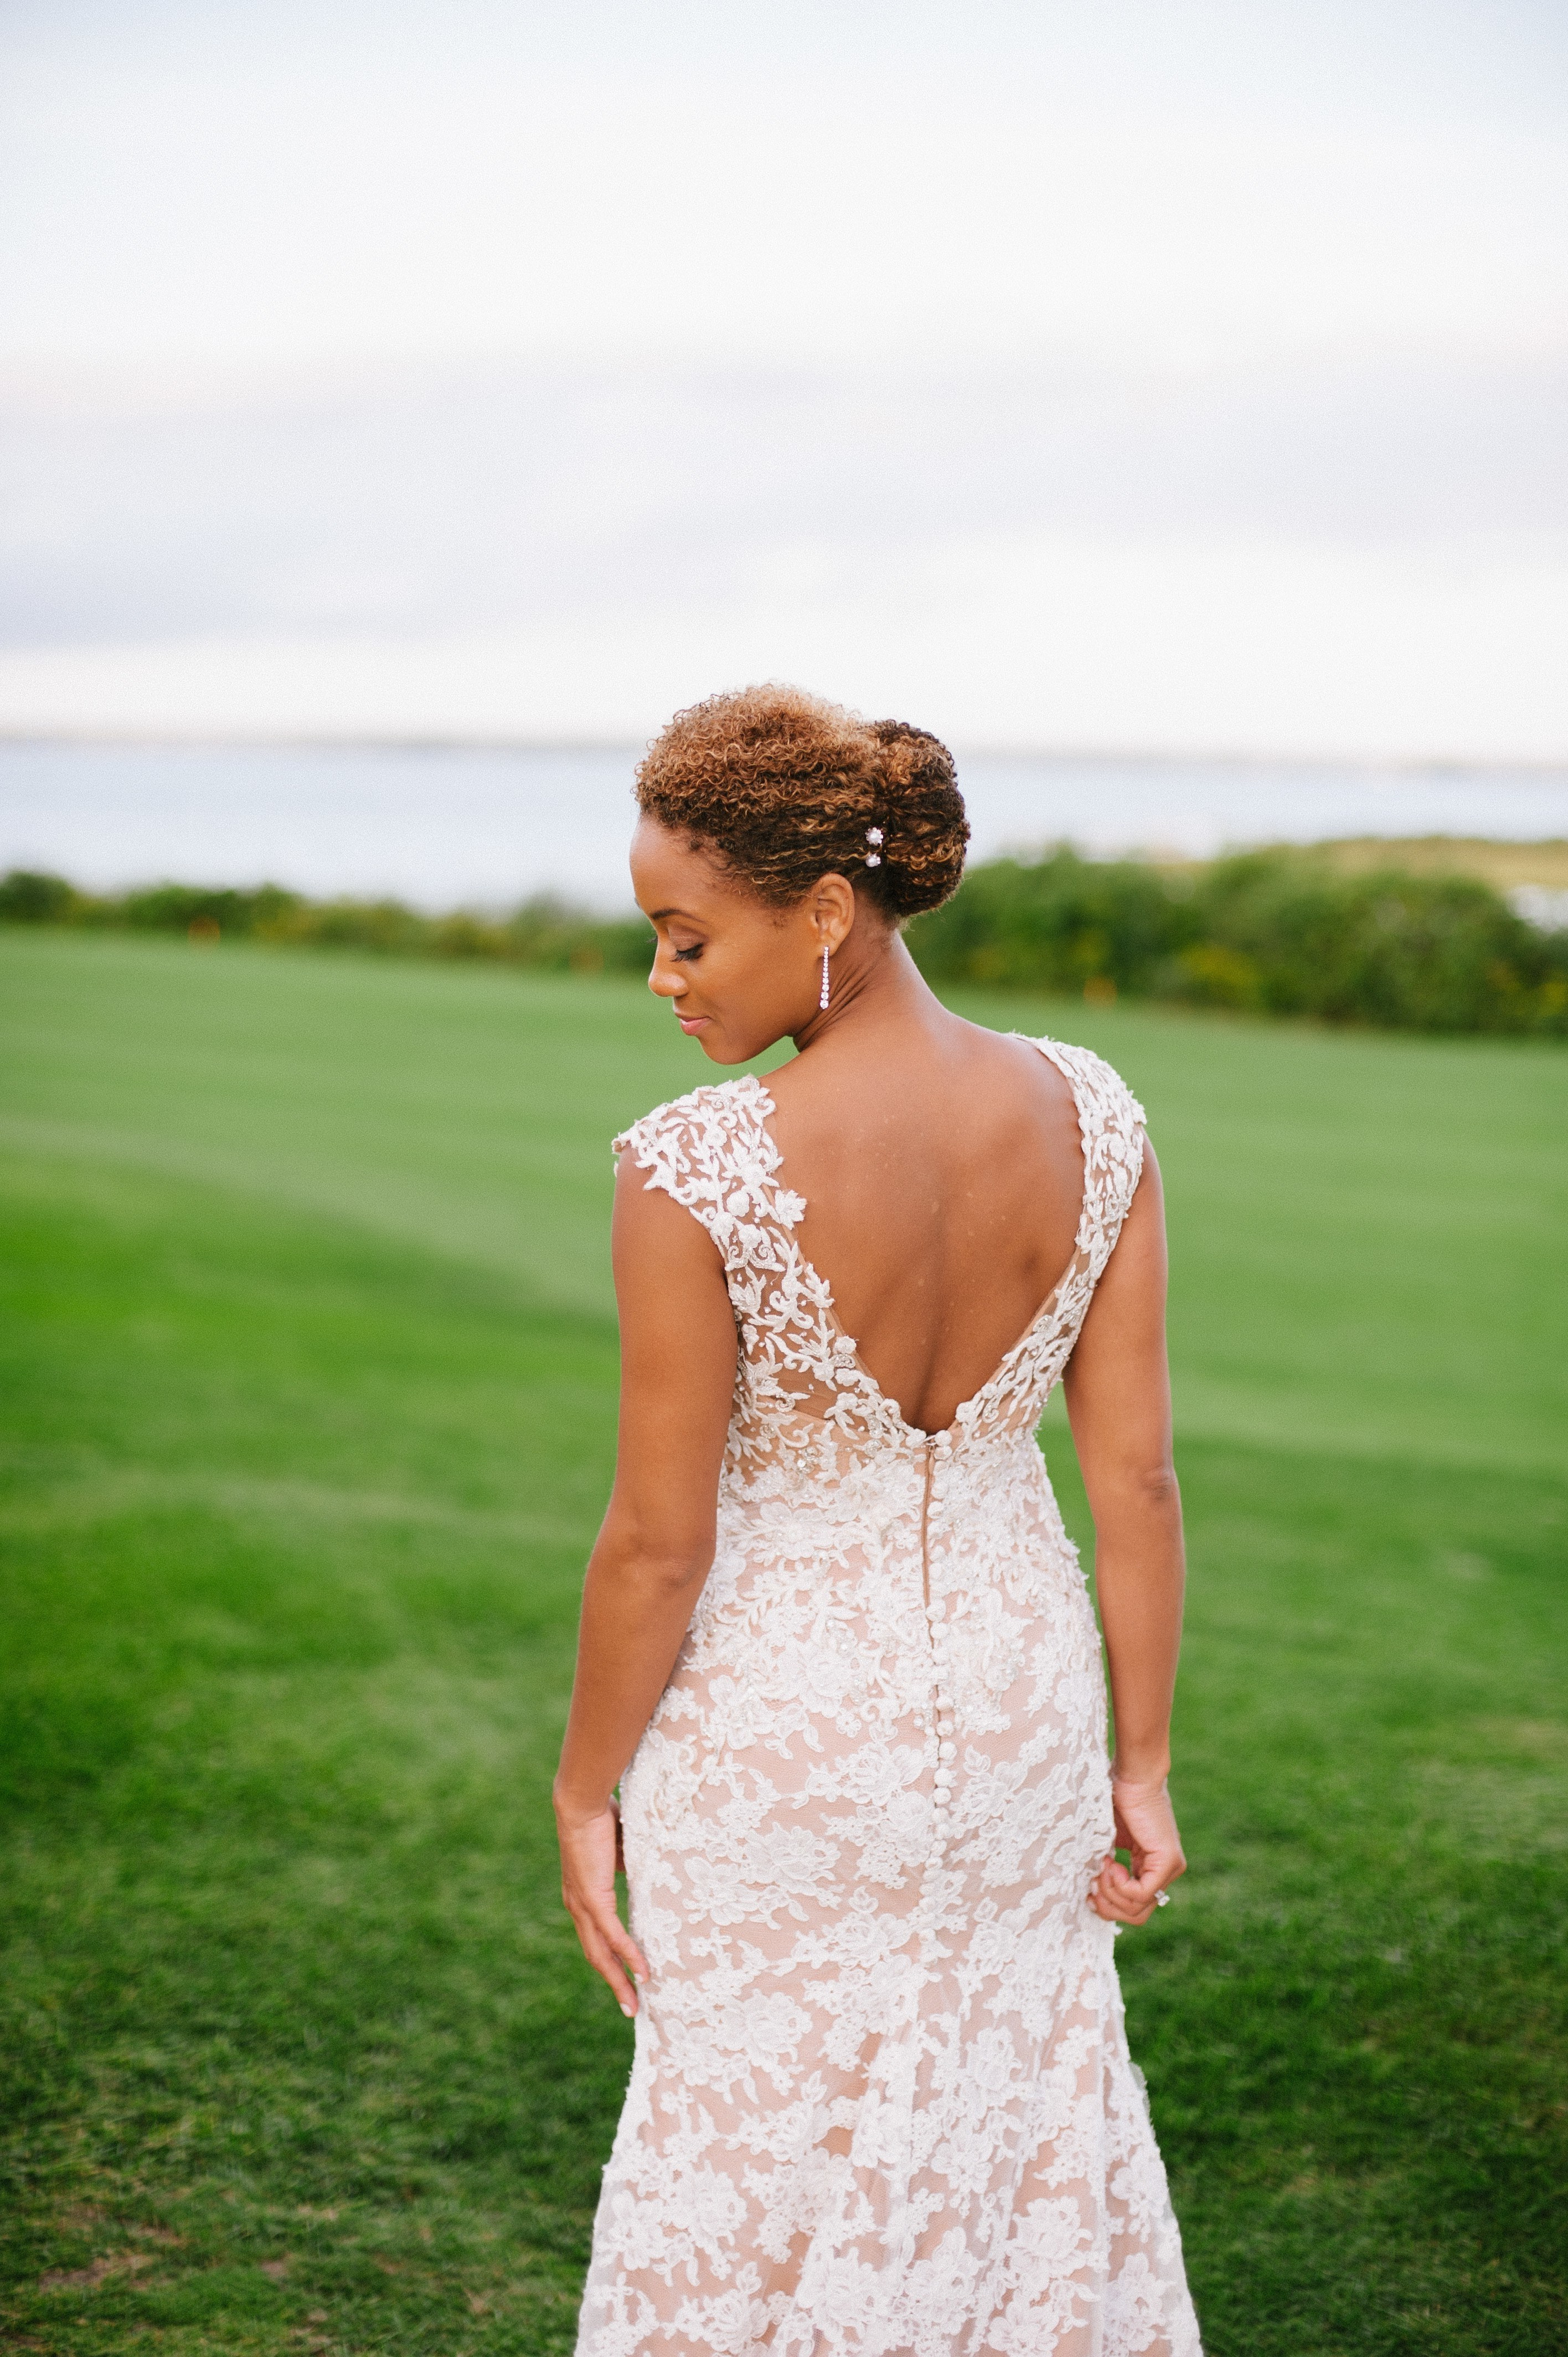 Widely Used Curly Bob Bridal Hairdos With Side Twists Pertaining To The 60 Prettiest Bridal Hairstyles From Real Weddings (View 10 of 20)